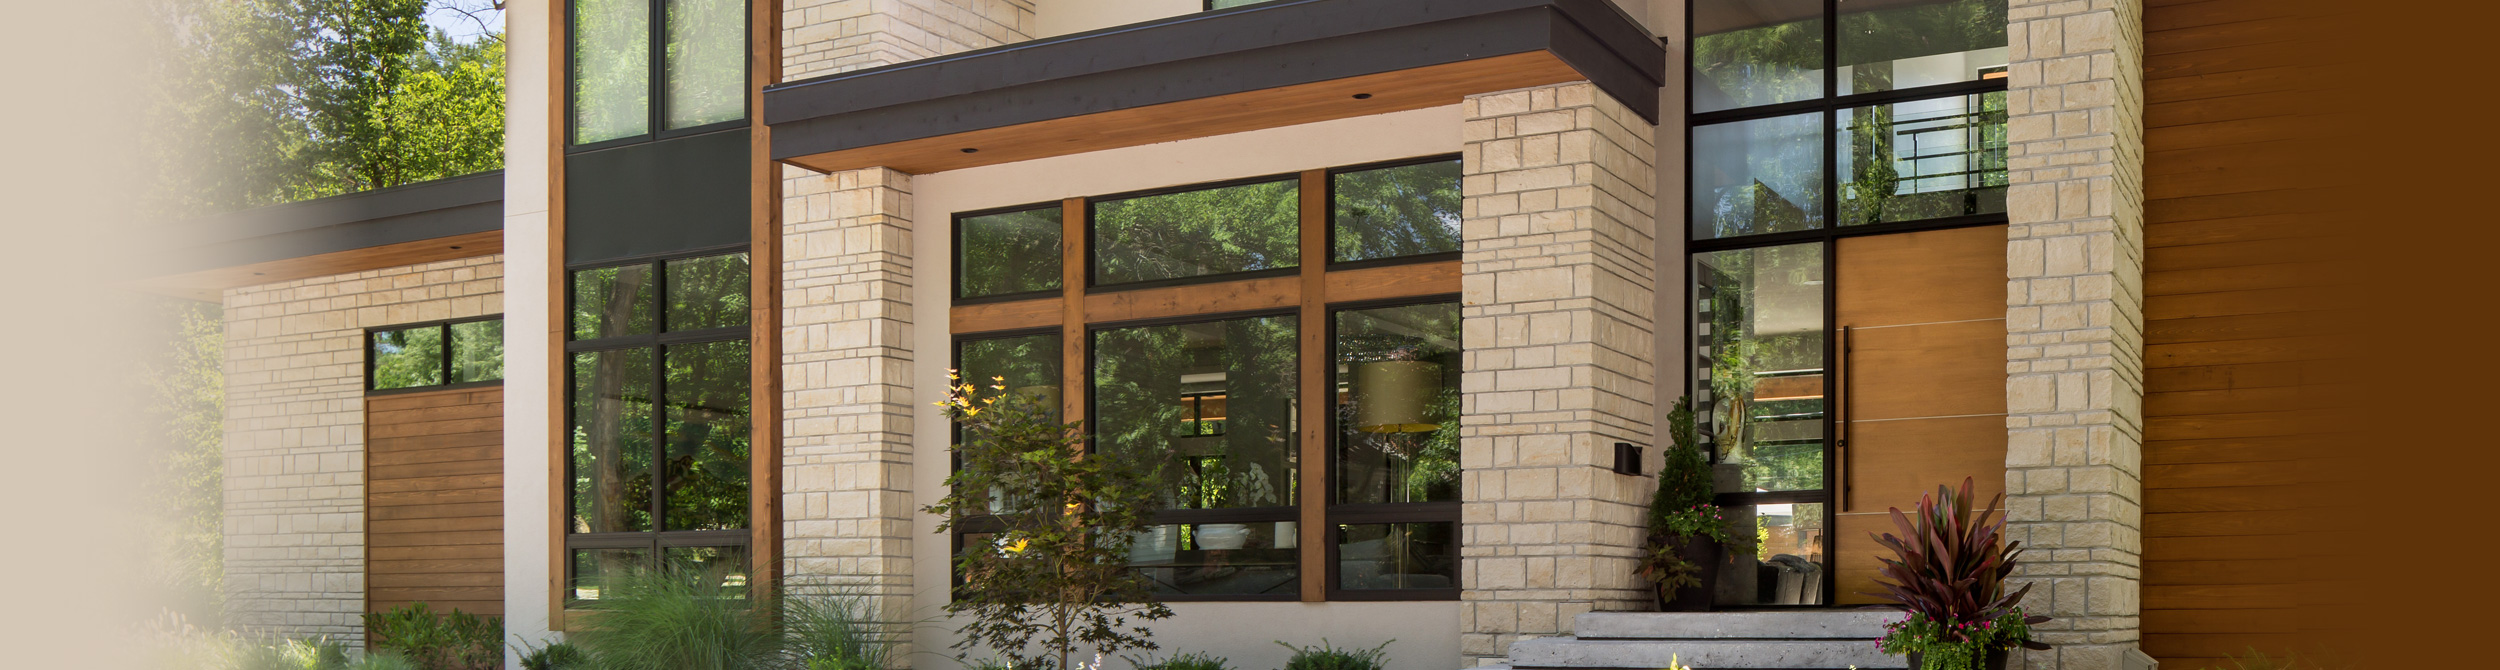 Modern brick house with expansive glass windows.